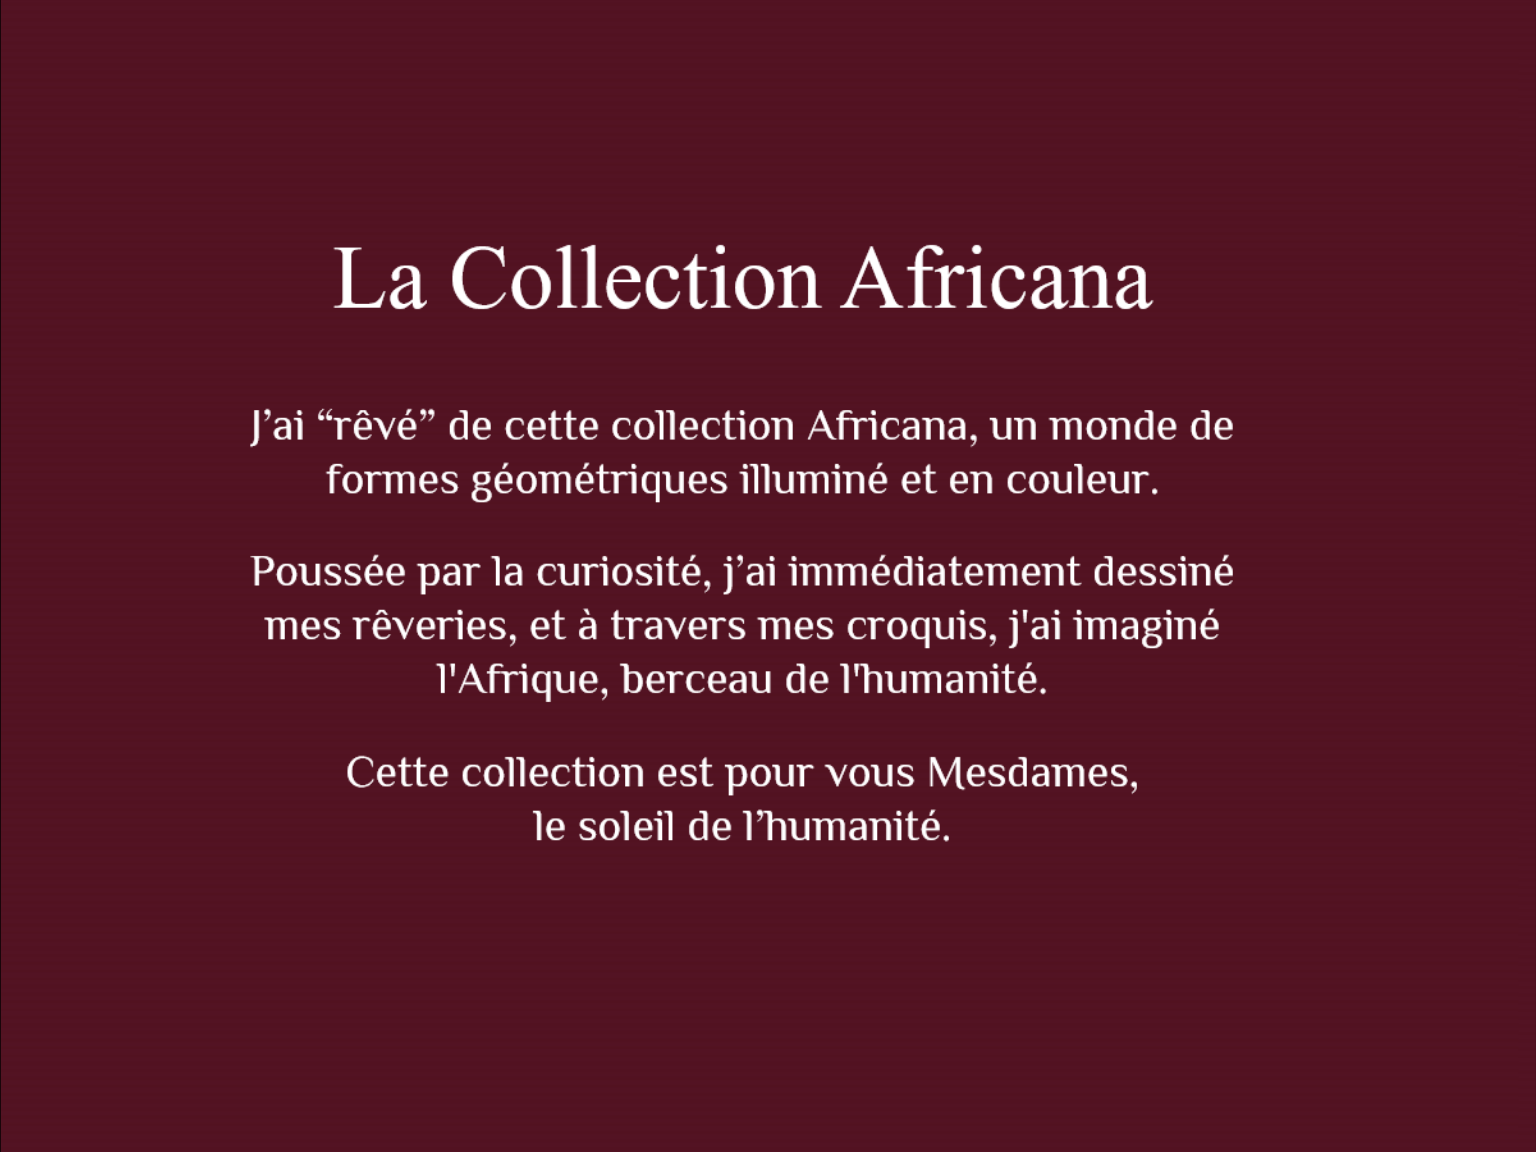 La collection africana 14